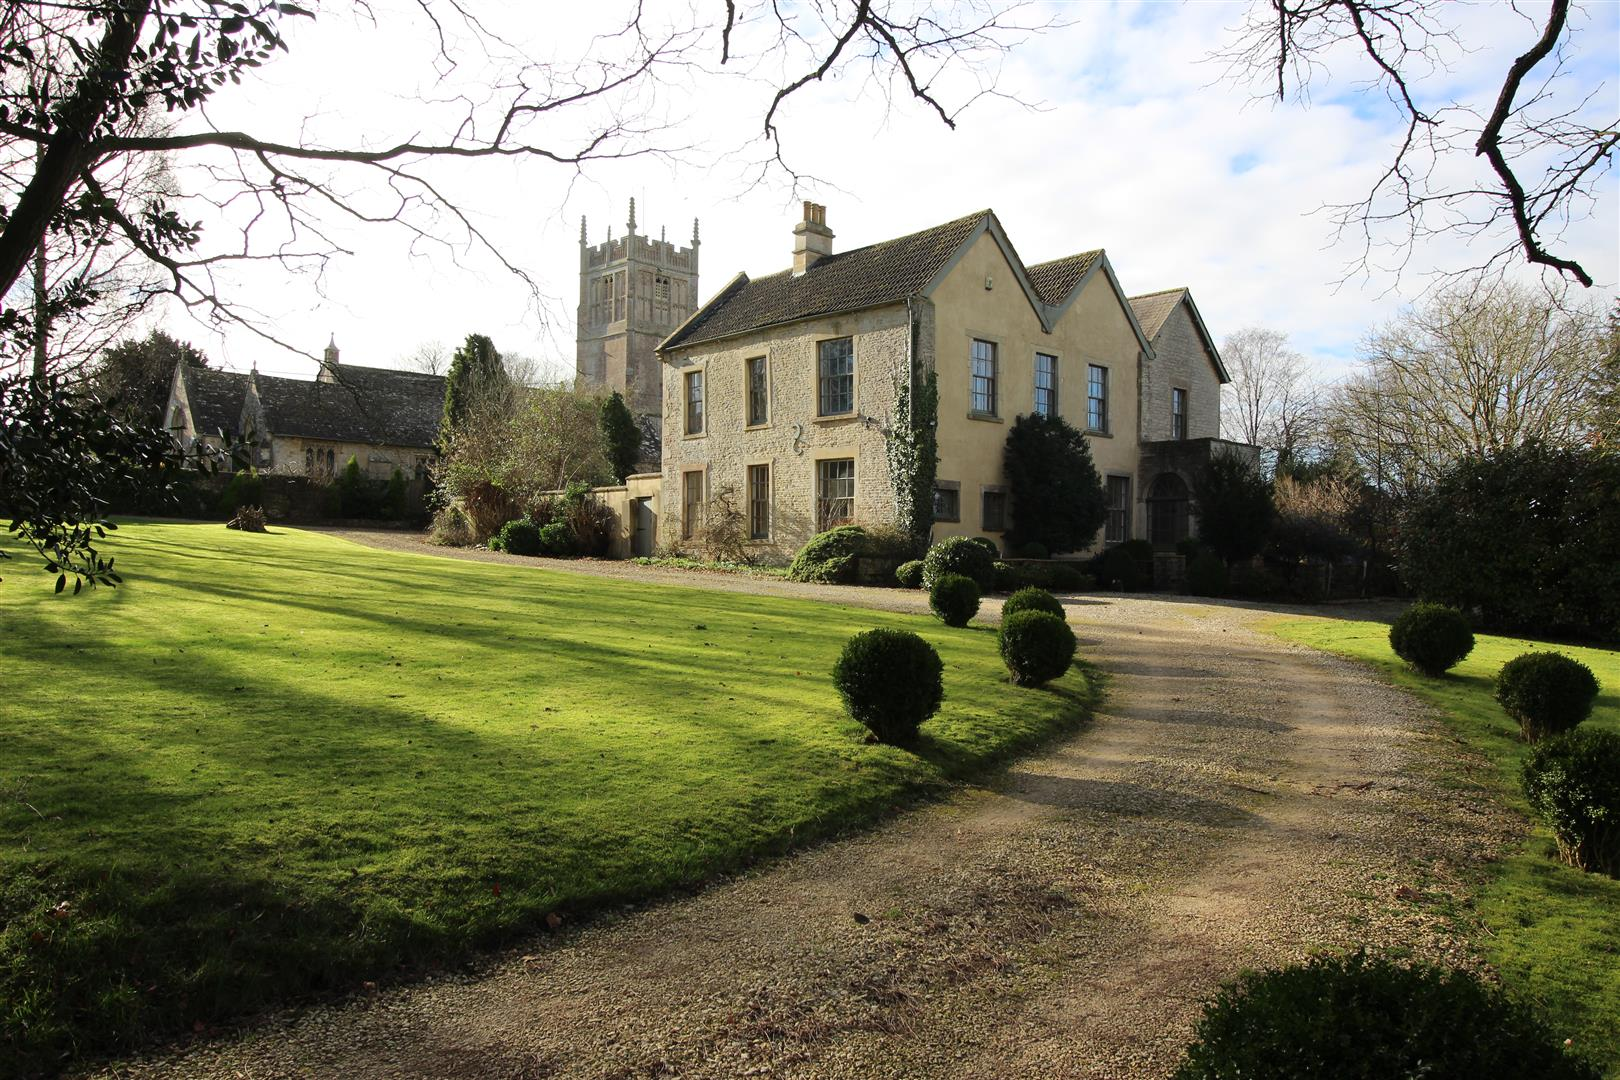 6 Bedrooms Detached House for sale in Burton, Wiltshire